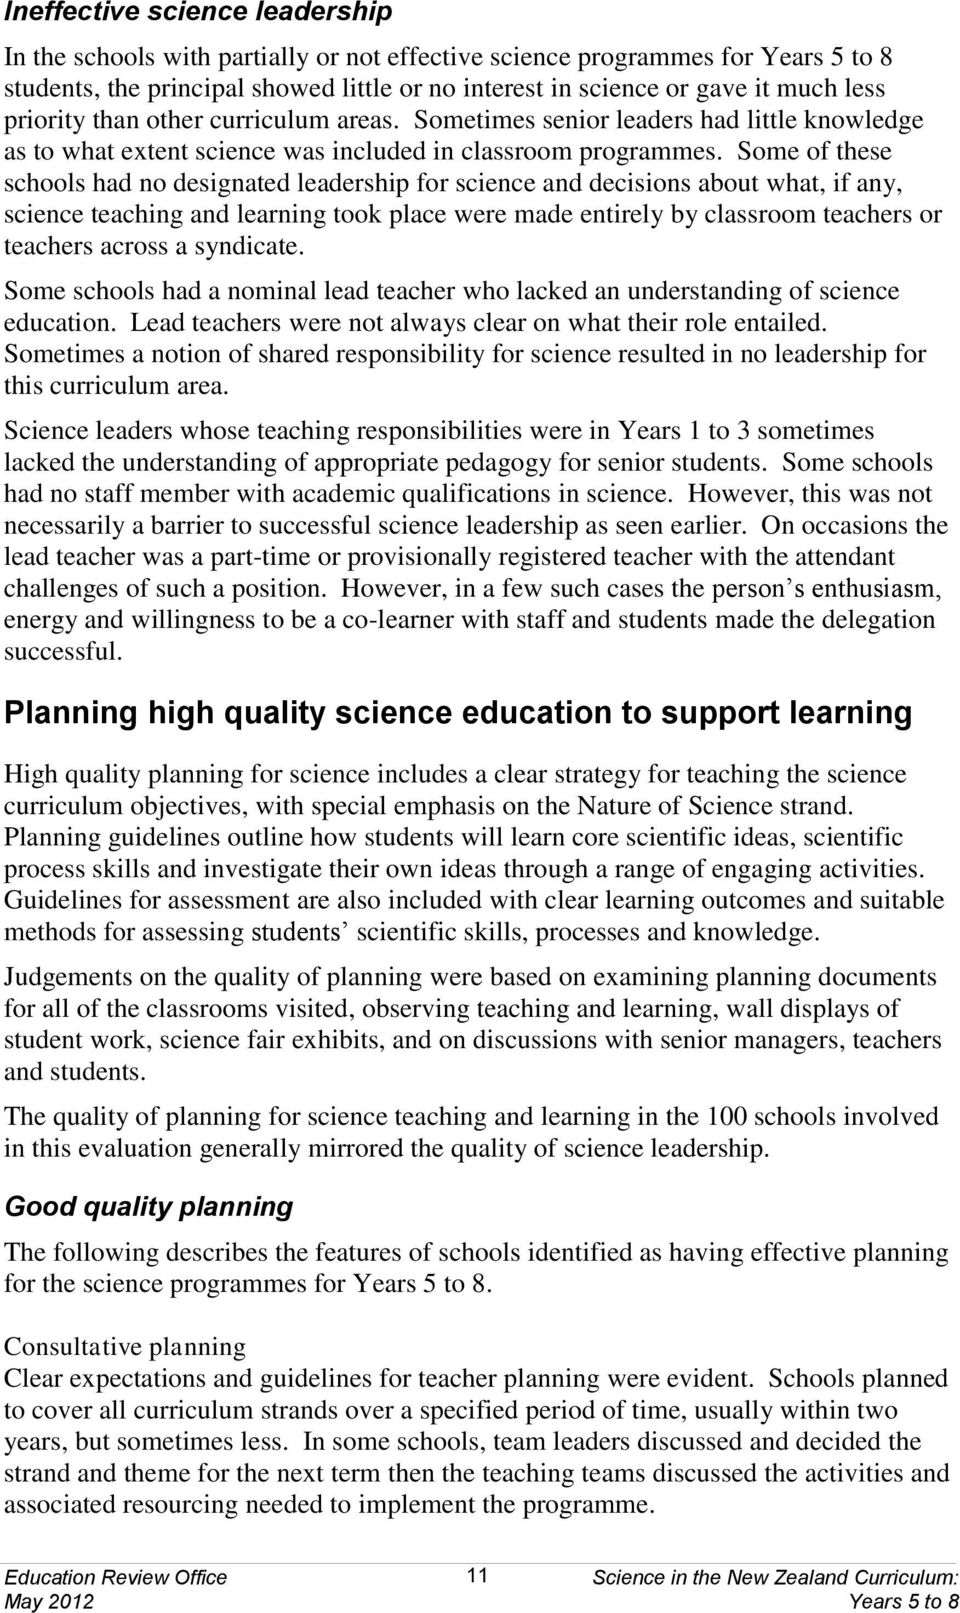 Some of these schools had no designated leadership for science and decisions about what, if any, science teaching and learning took place were made entirely by classroom teachers or teachers across a